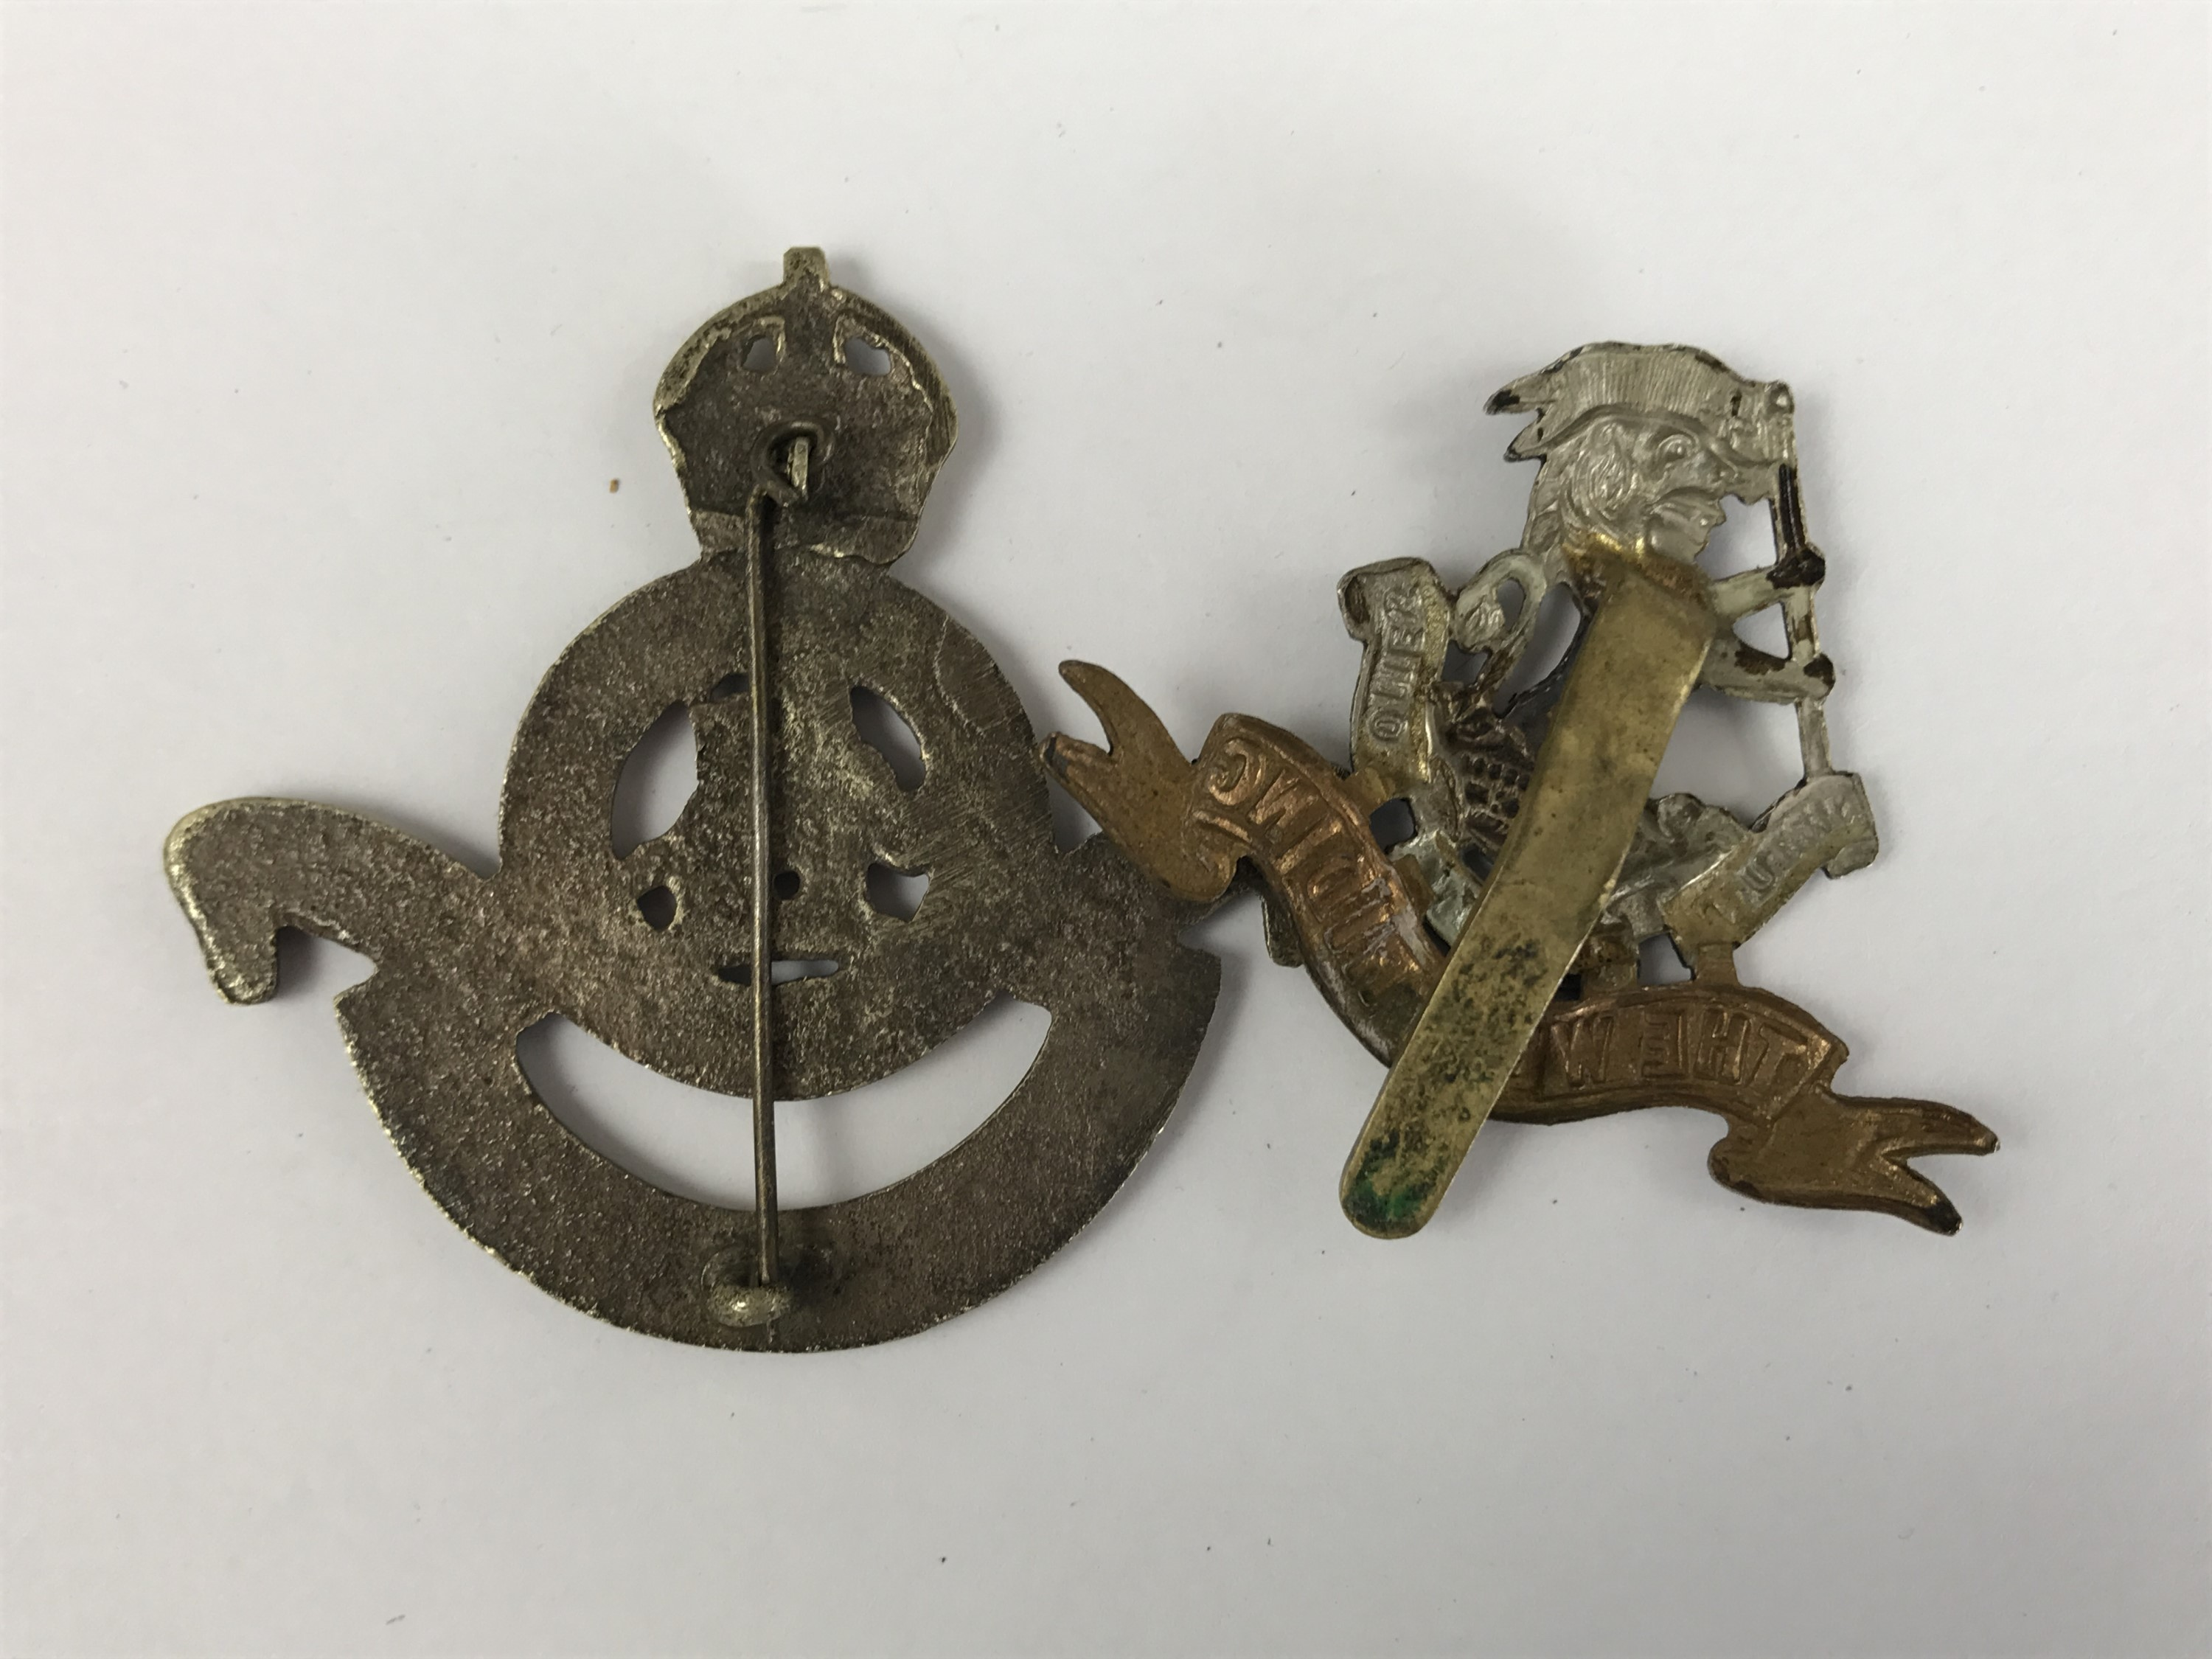 Lot 55 - An Indian-made cast-brass 2nd Battalion Duke of Wellington's Regiment cap badge, together with one